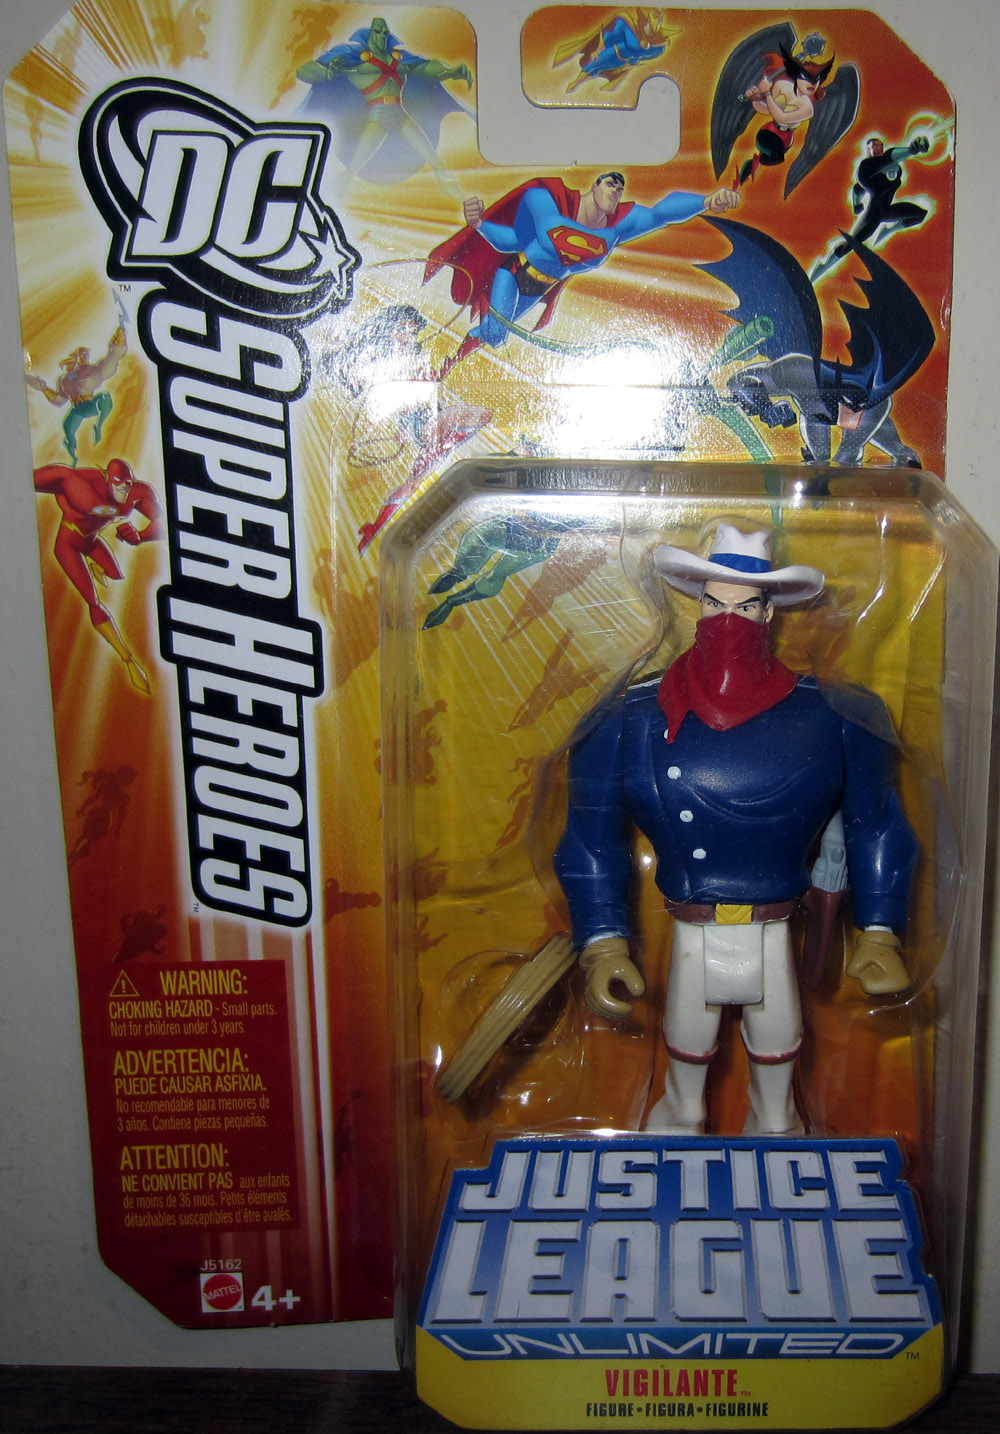 Vigilante (DC SuperHeroes, Justice League Unlimited)